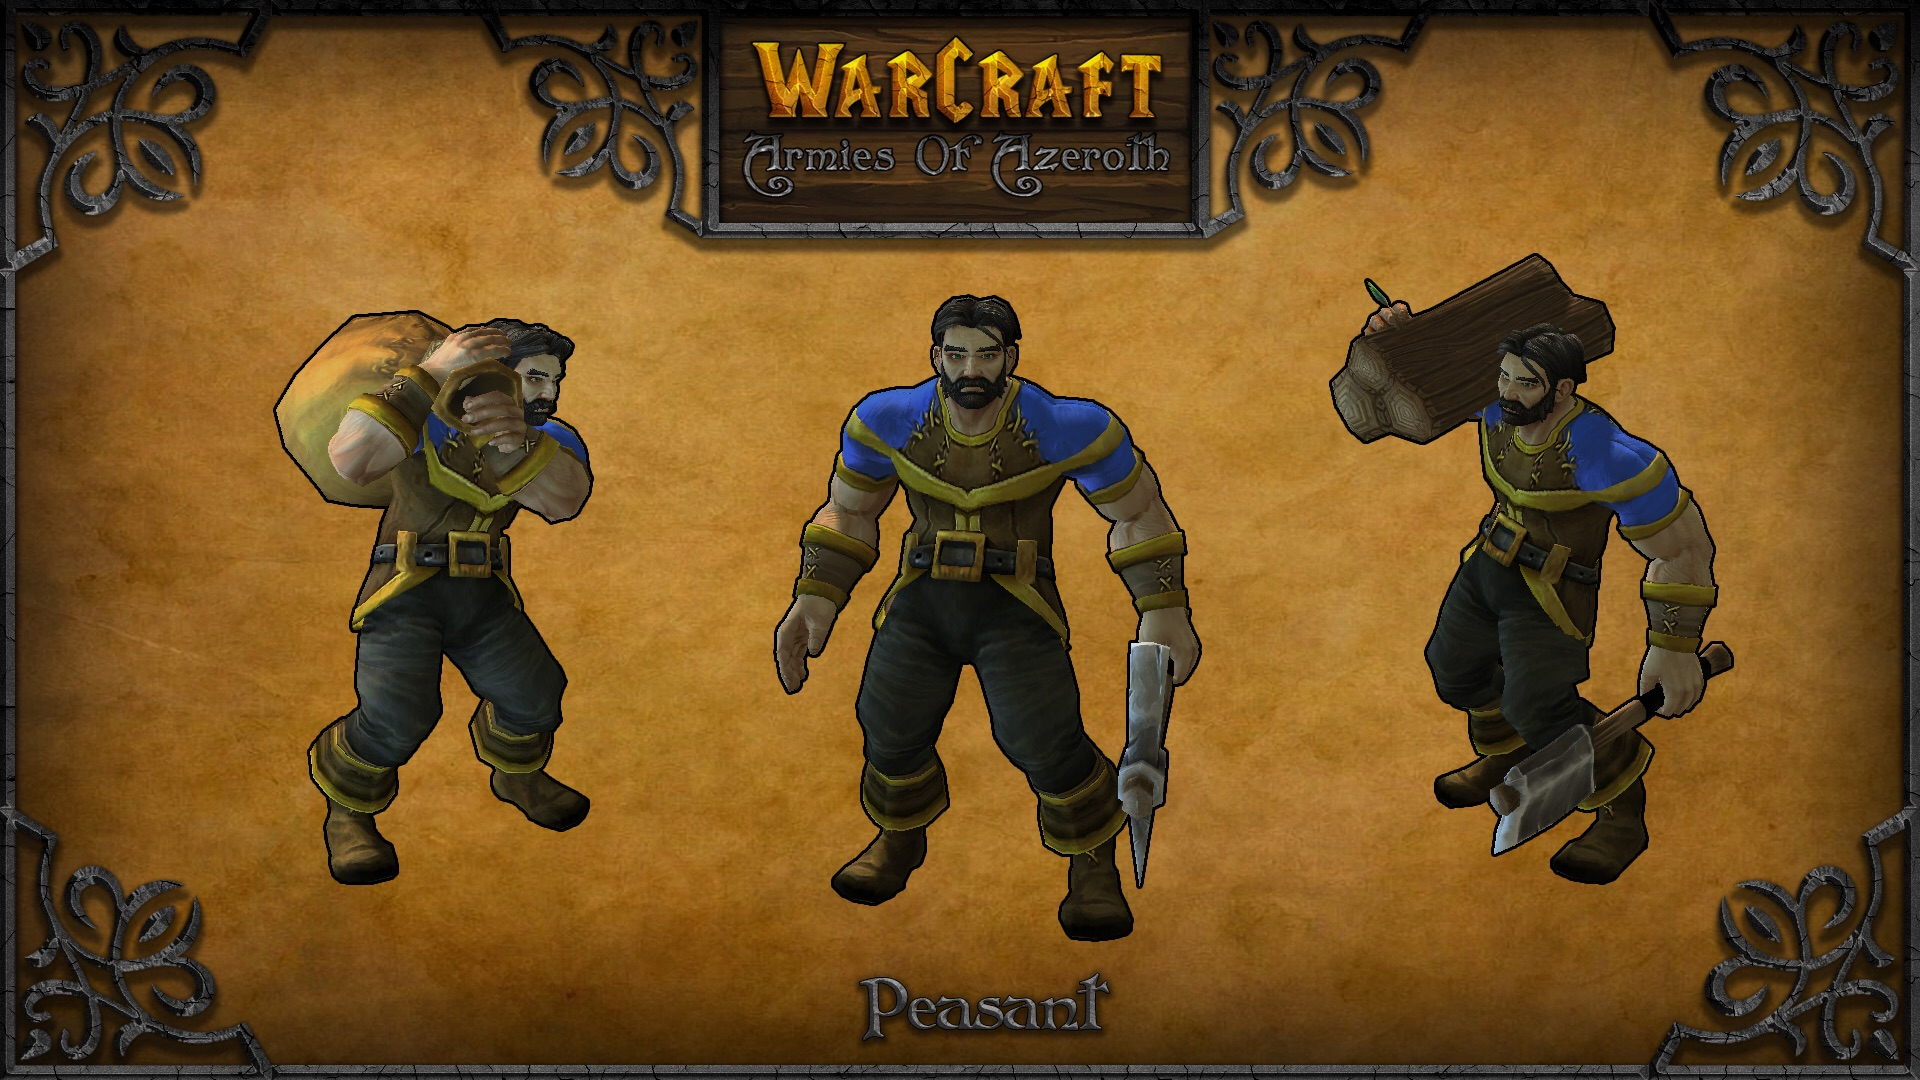 Peasant Model Image Warcraft Armies Of Azeroth Mod For